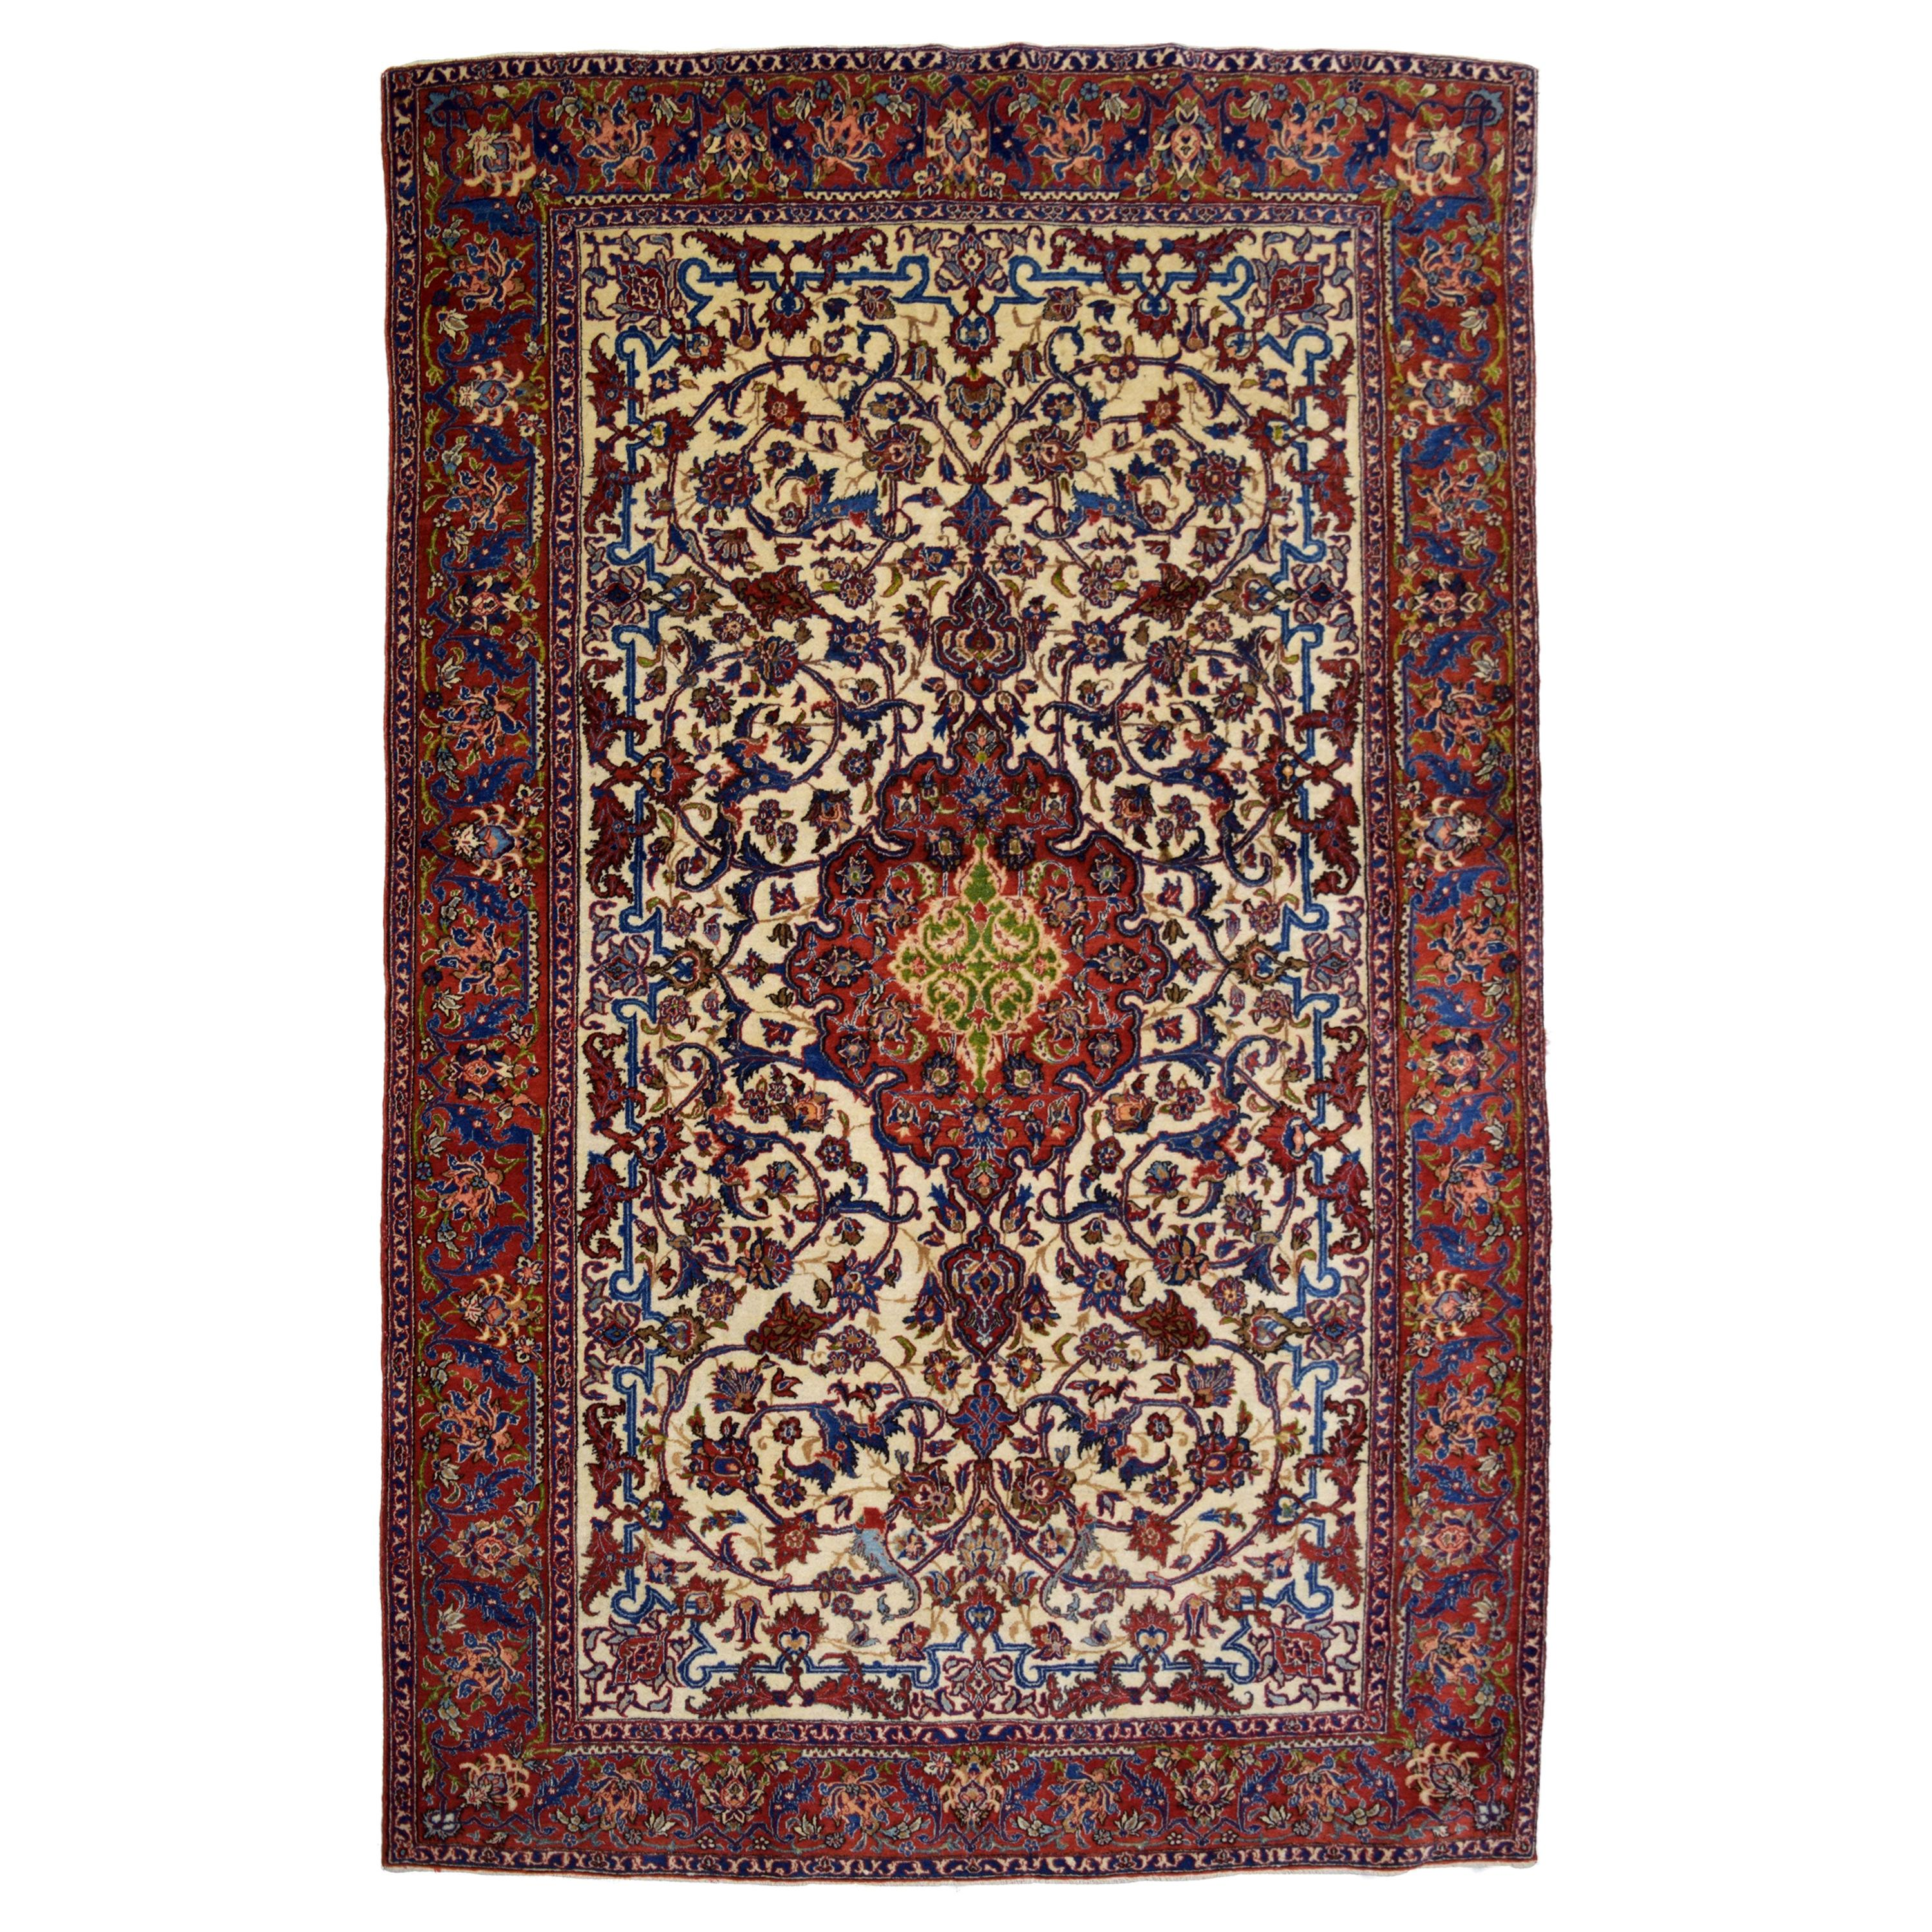 Fine Antique Persian Isfahan Carpet in Red, Cream, and Gold Wool